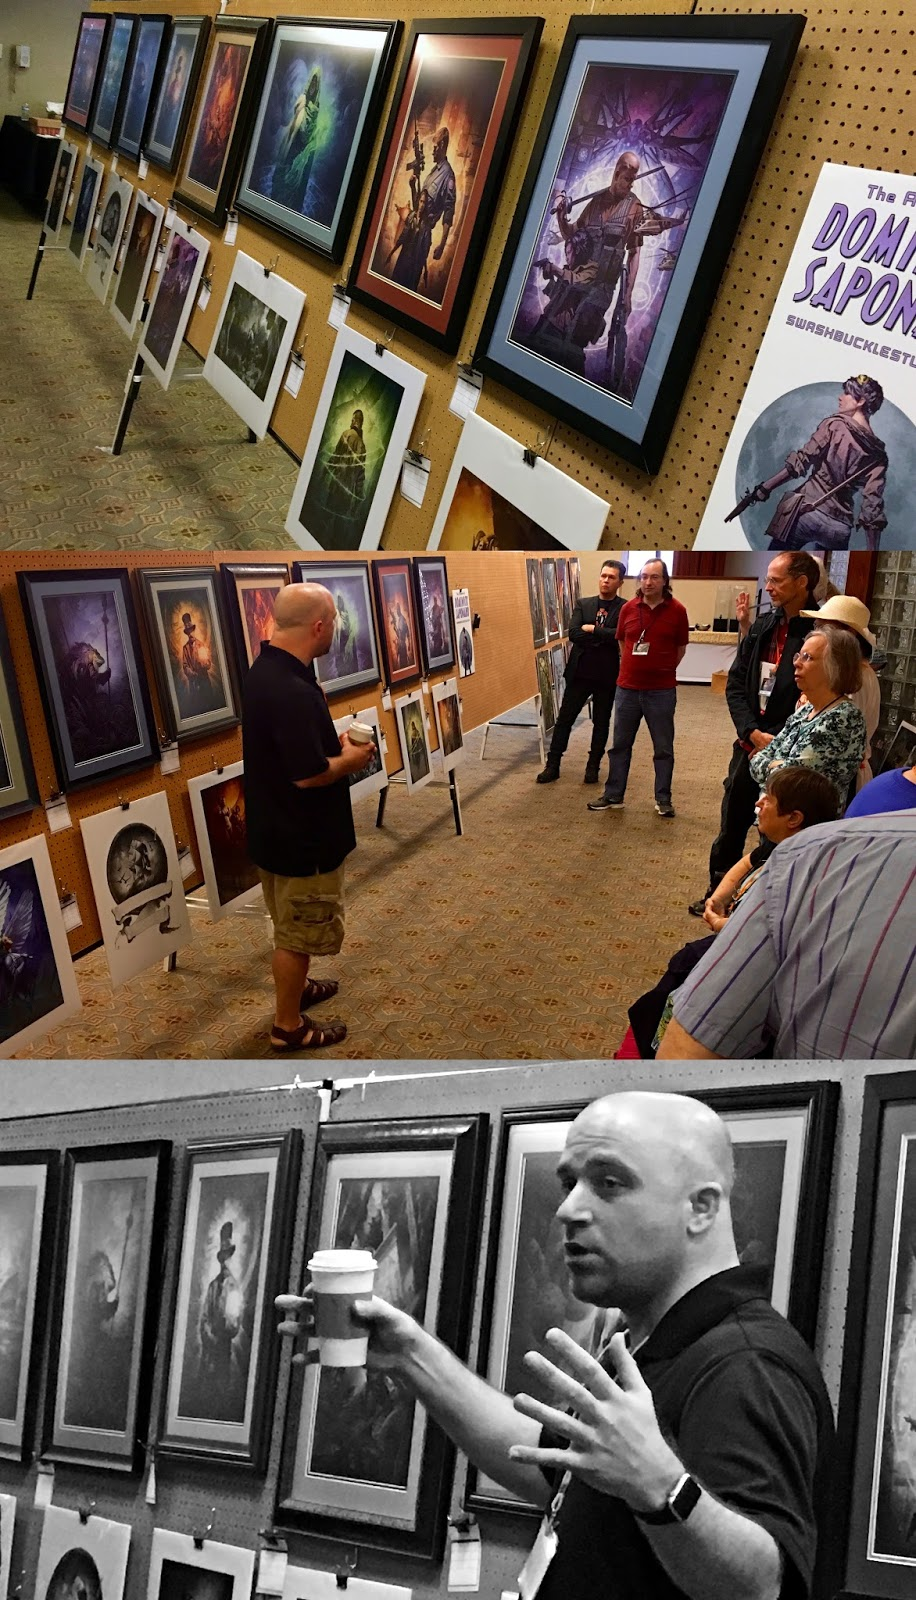 Top: My work on display in the art show. Middle: My guest artist interview panel hosted by the awesome John Picacio. Bottom: Talking with my hands and being very animated about my work!